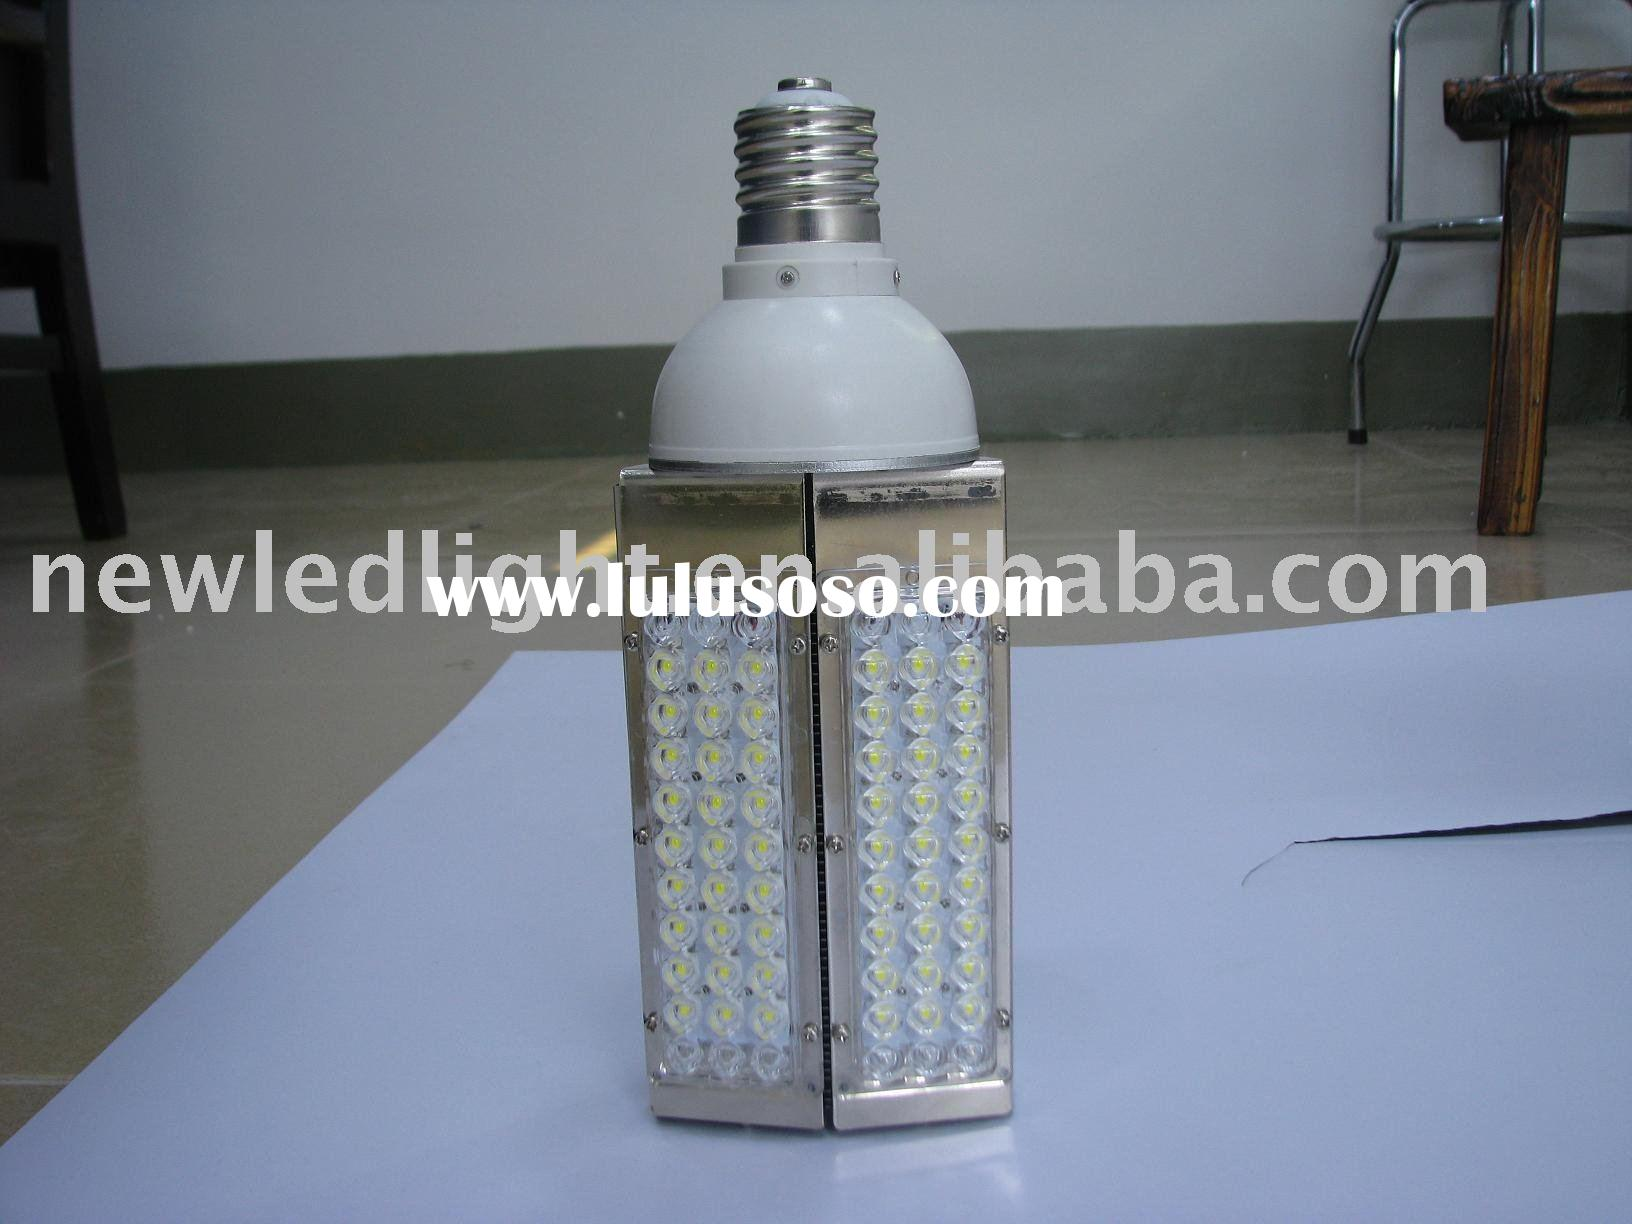 led street light lamp